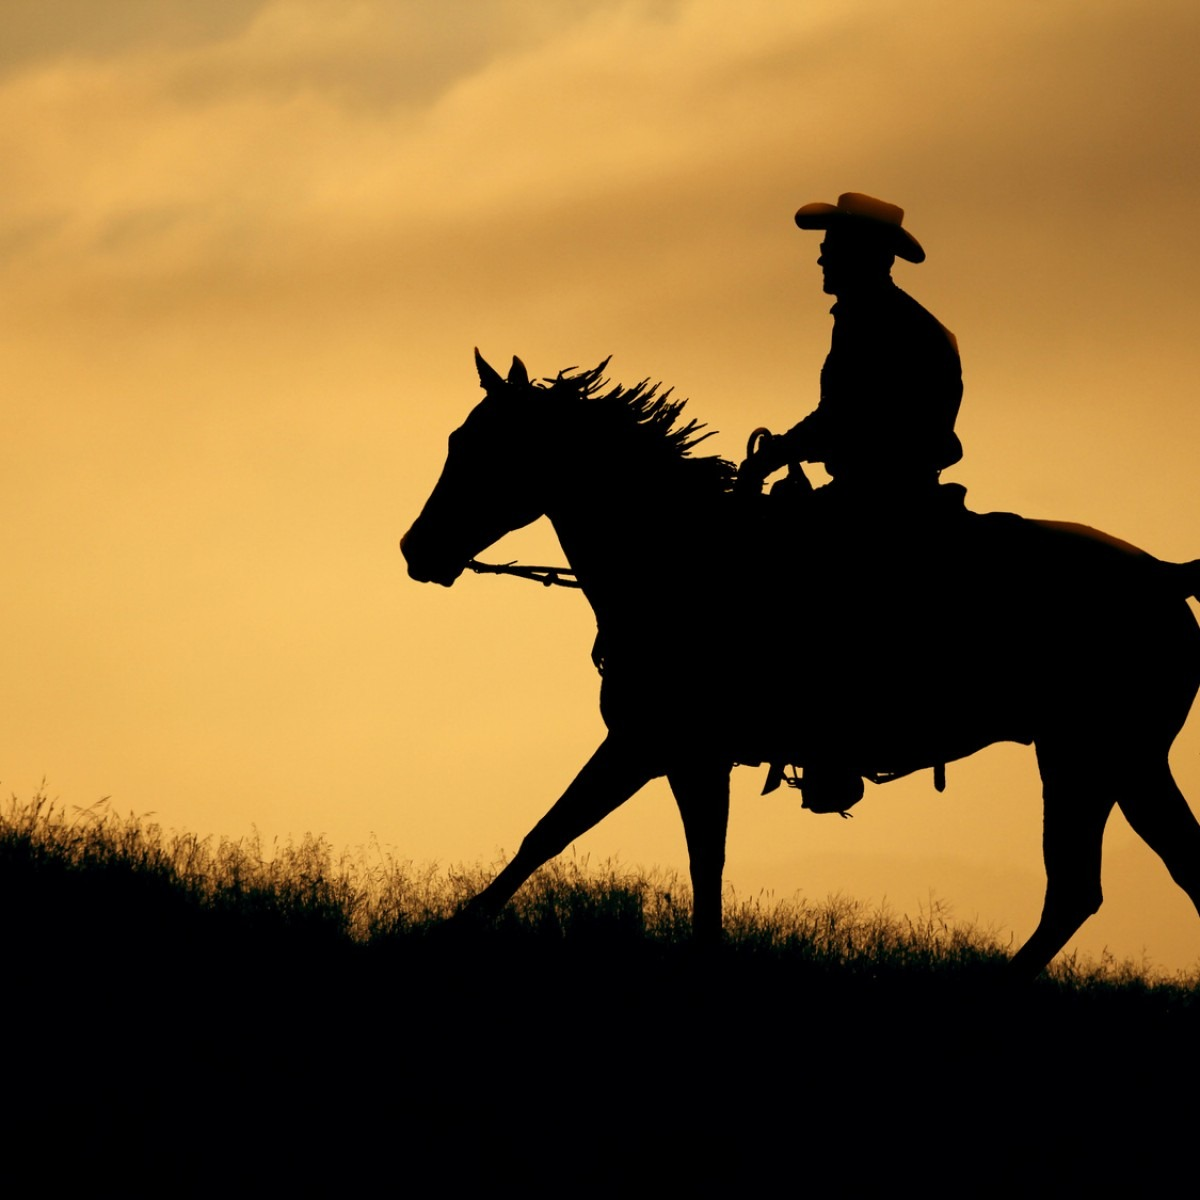 Silhouette Of A Cowboy And Horse At Sunset A Champion